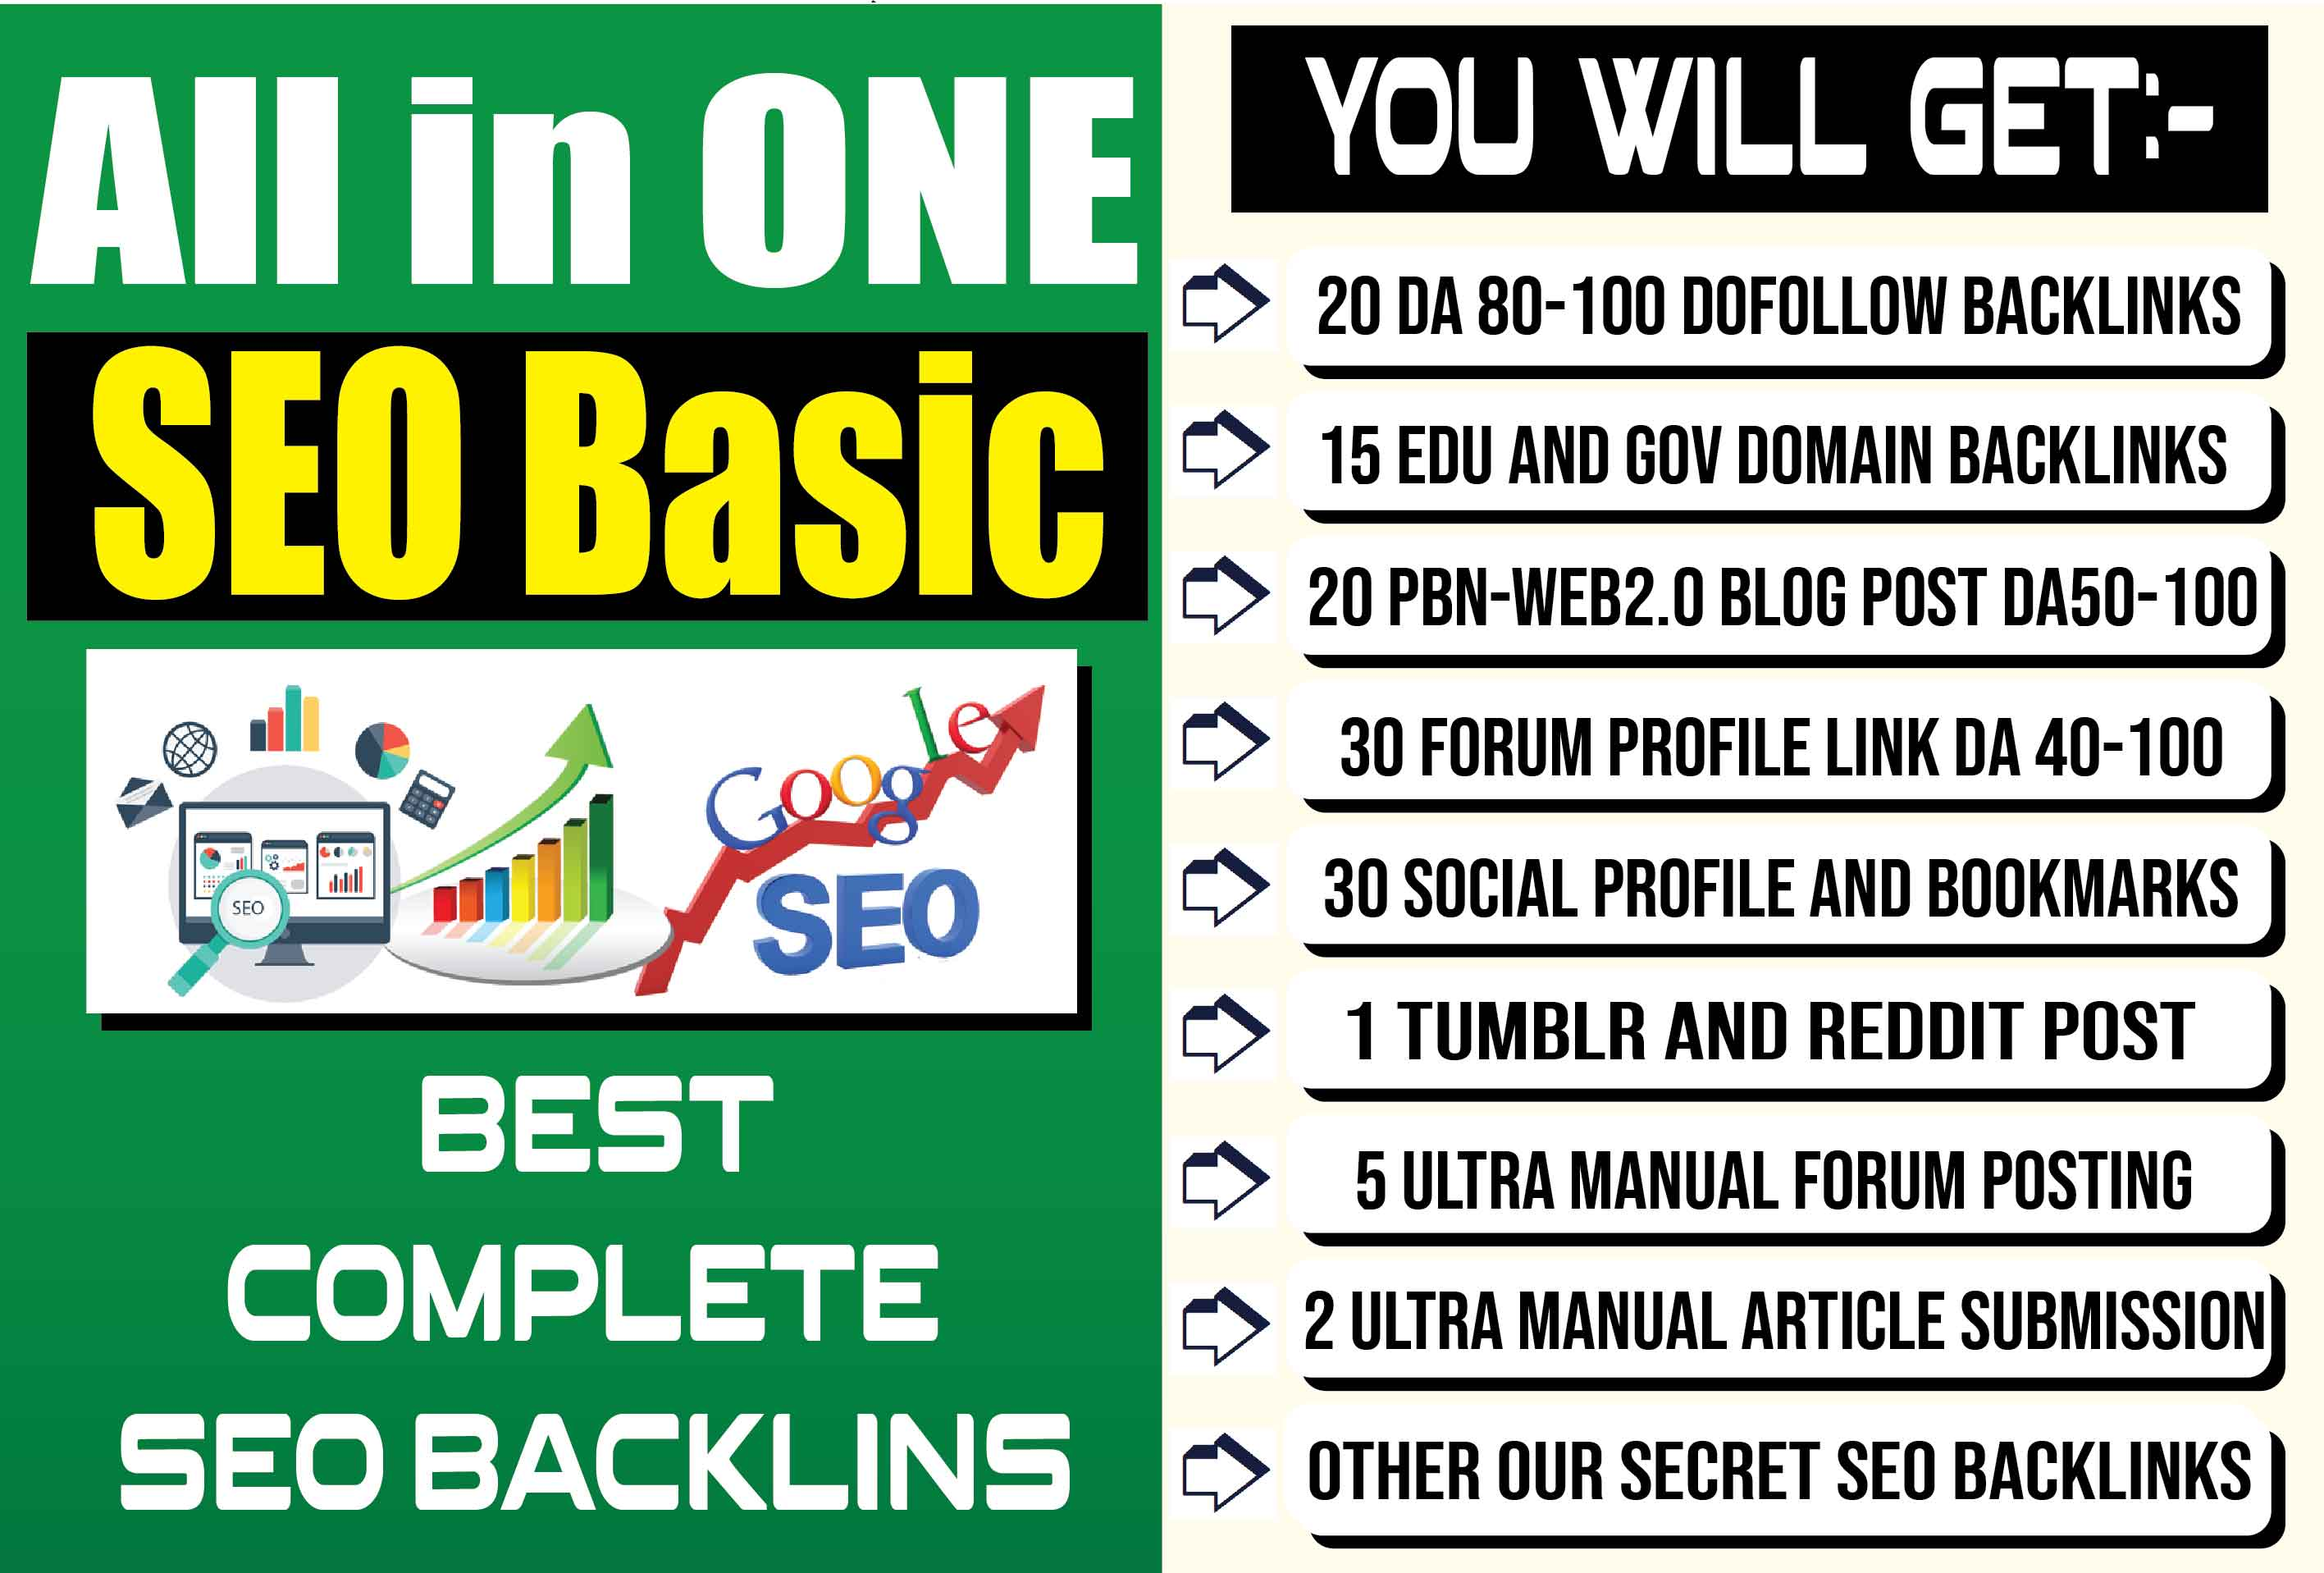 Manually Complete All in One SEO Basic Backlinks to Achieve Google First Page Ranking